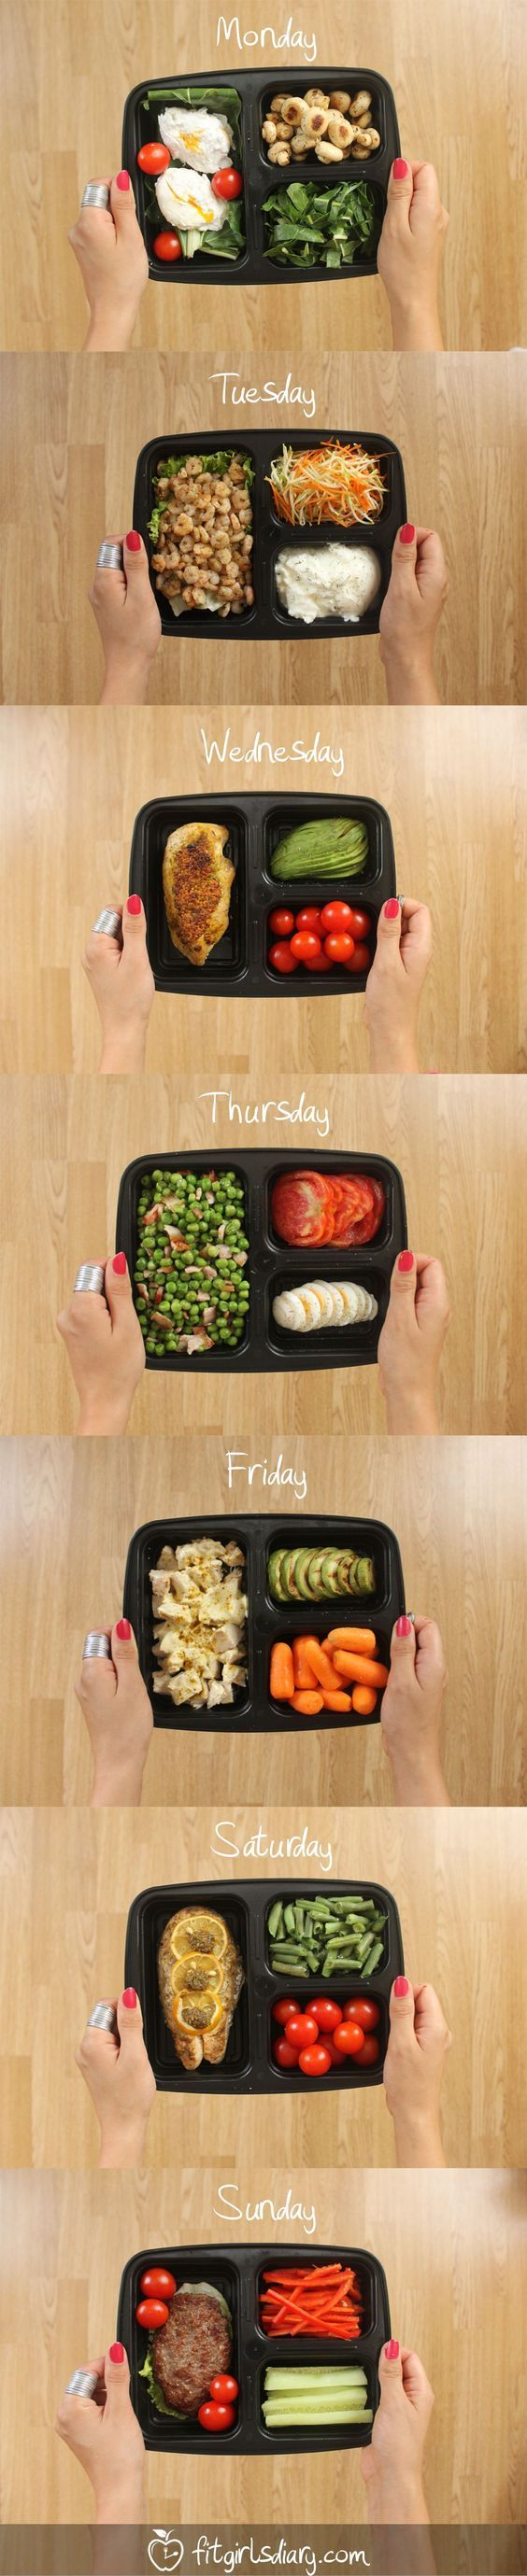 7 Days Of Healthy Meal Prep Ideas – Ready To Eat Meals and Protein On The Go Recipes: